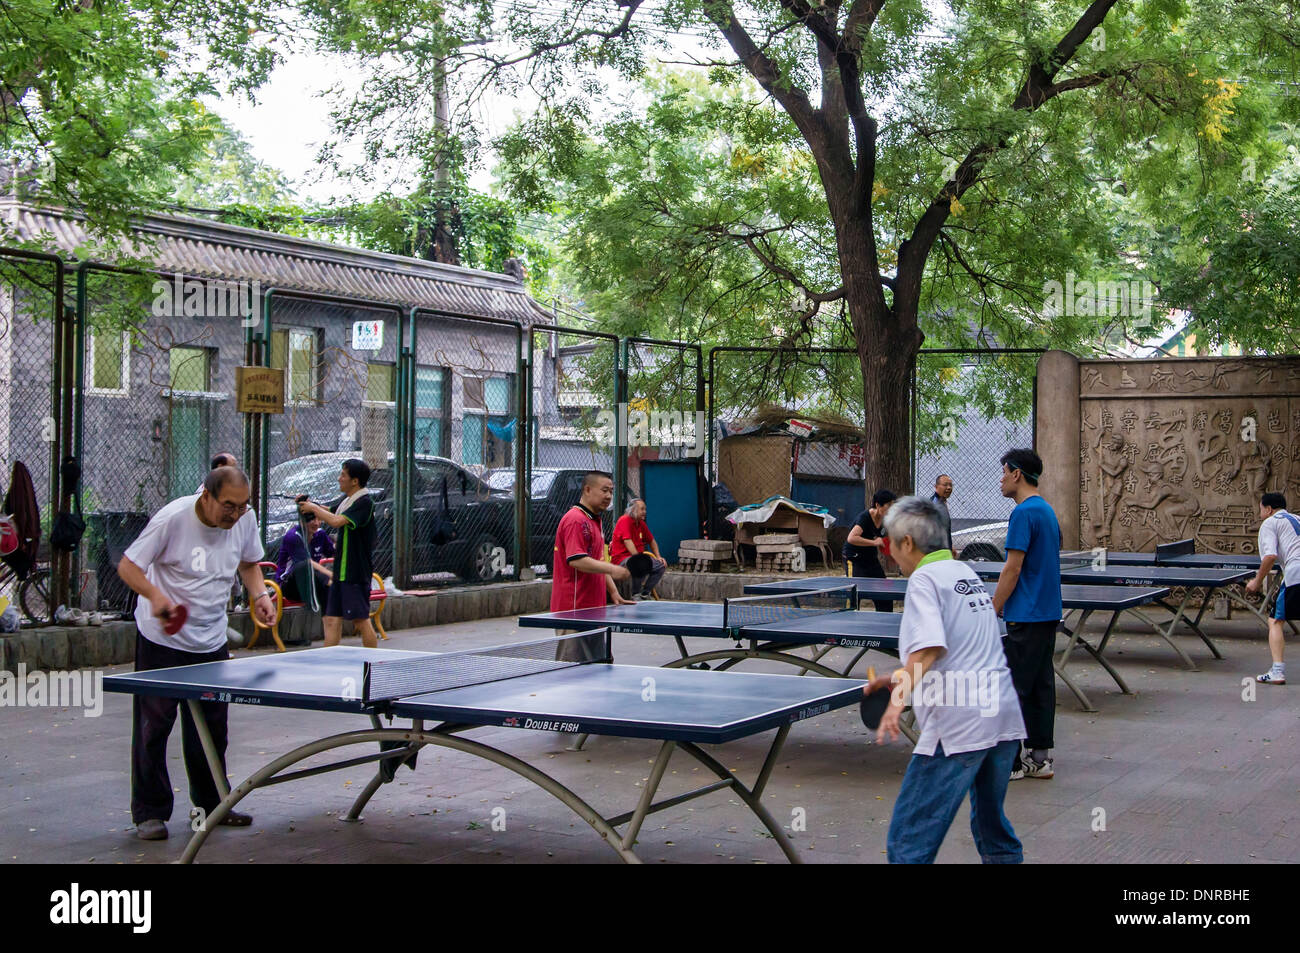 People Playing Table Tennis in a Park, Bejing, China - Stock Image